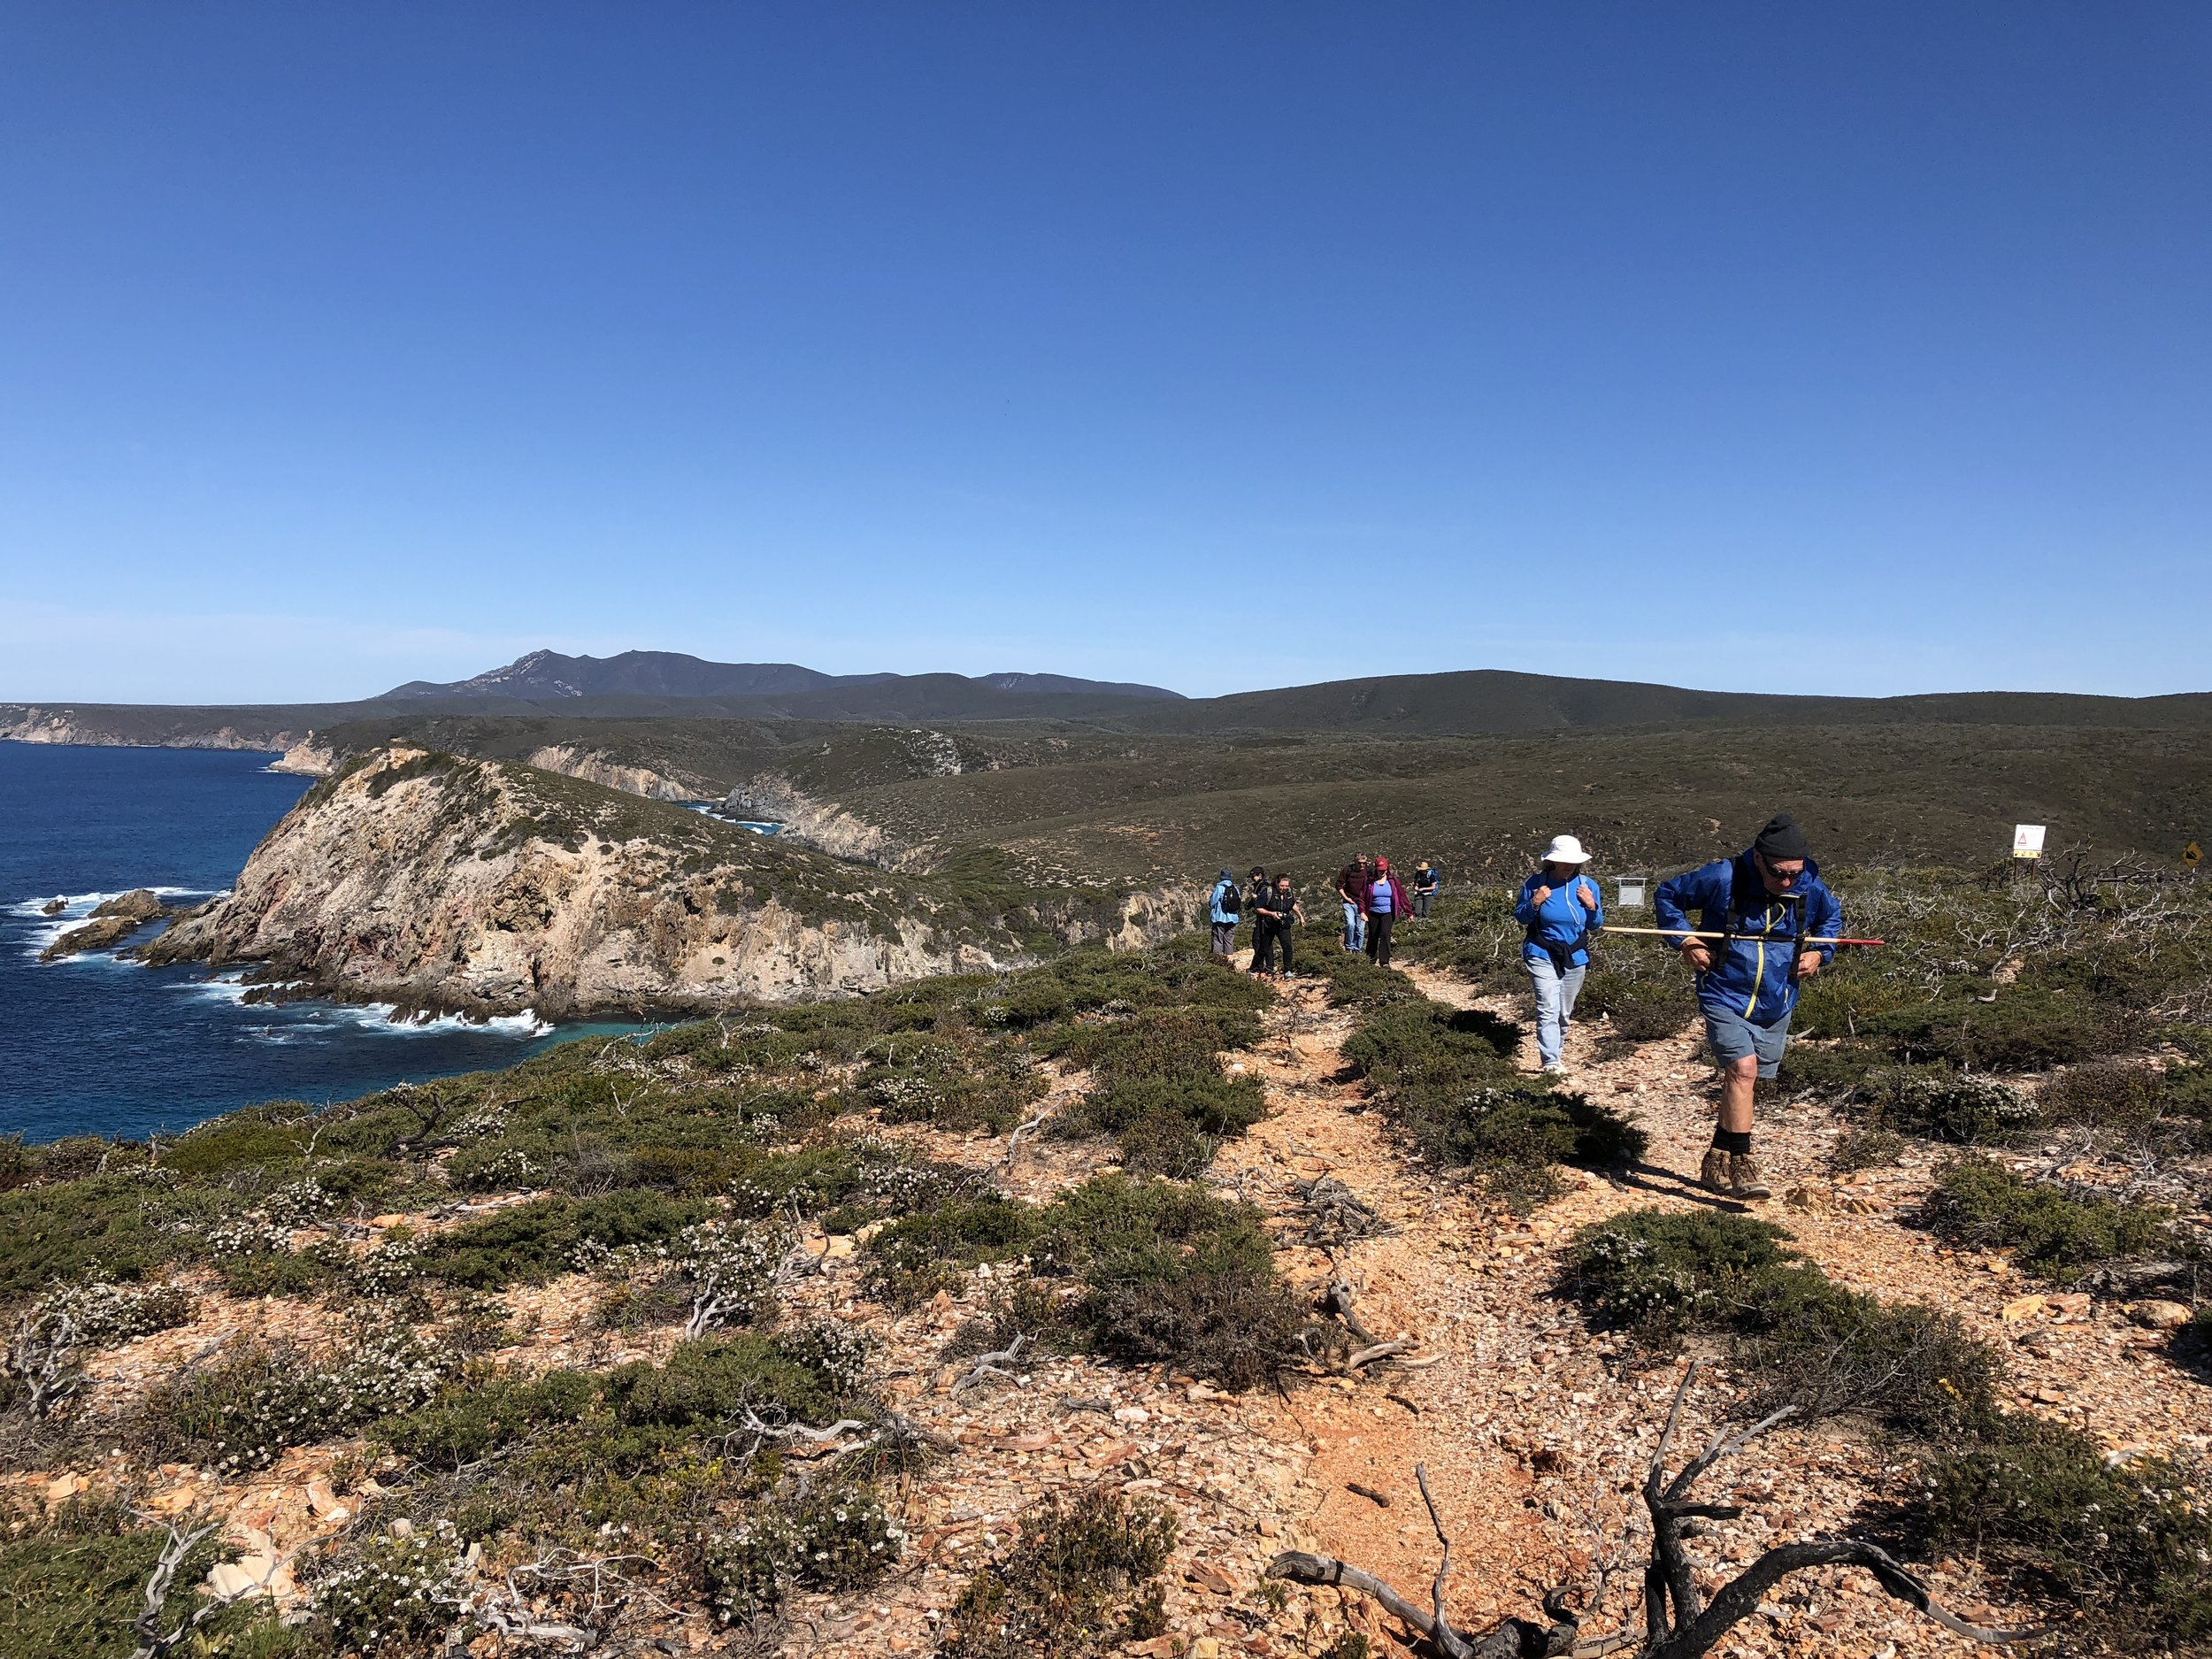 5-DAY WALKING WITH WILDFLOWERS - FITZGERALD BIOSPHERE